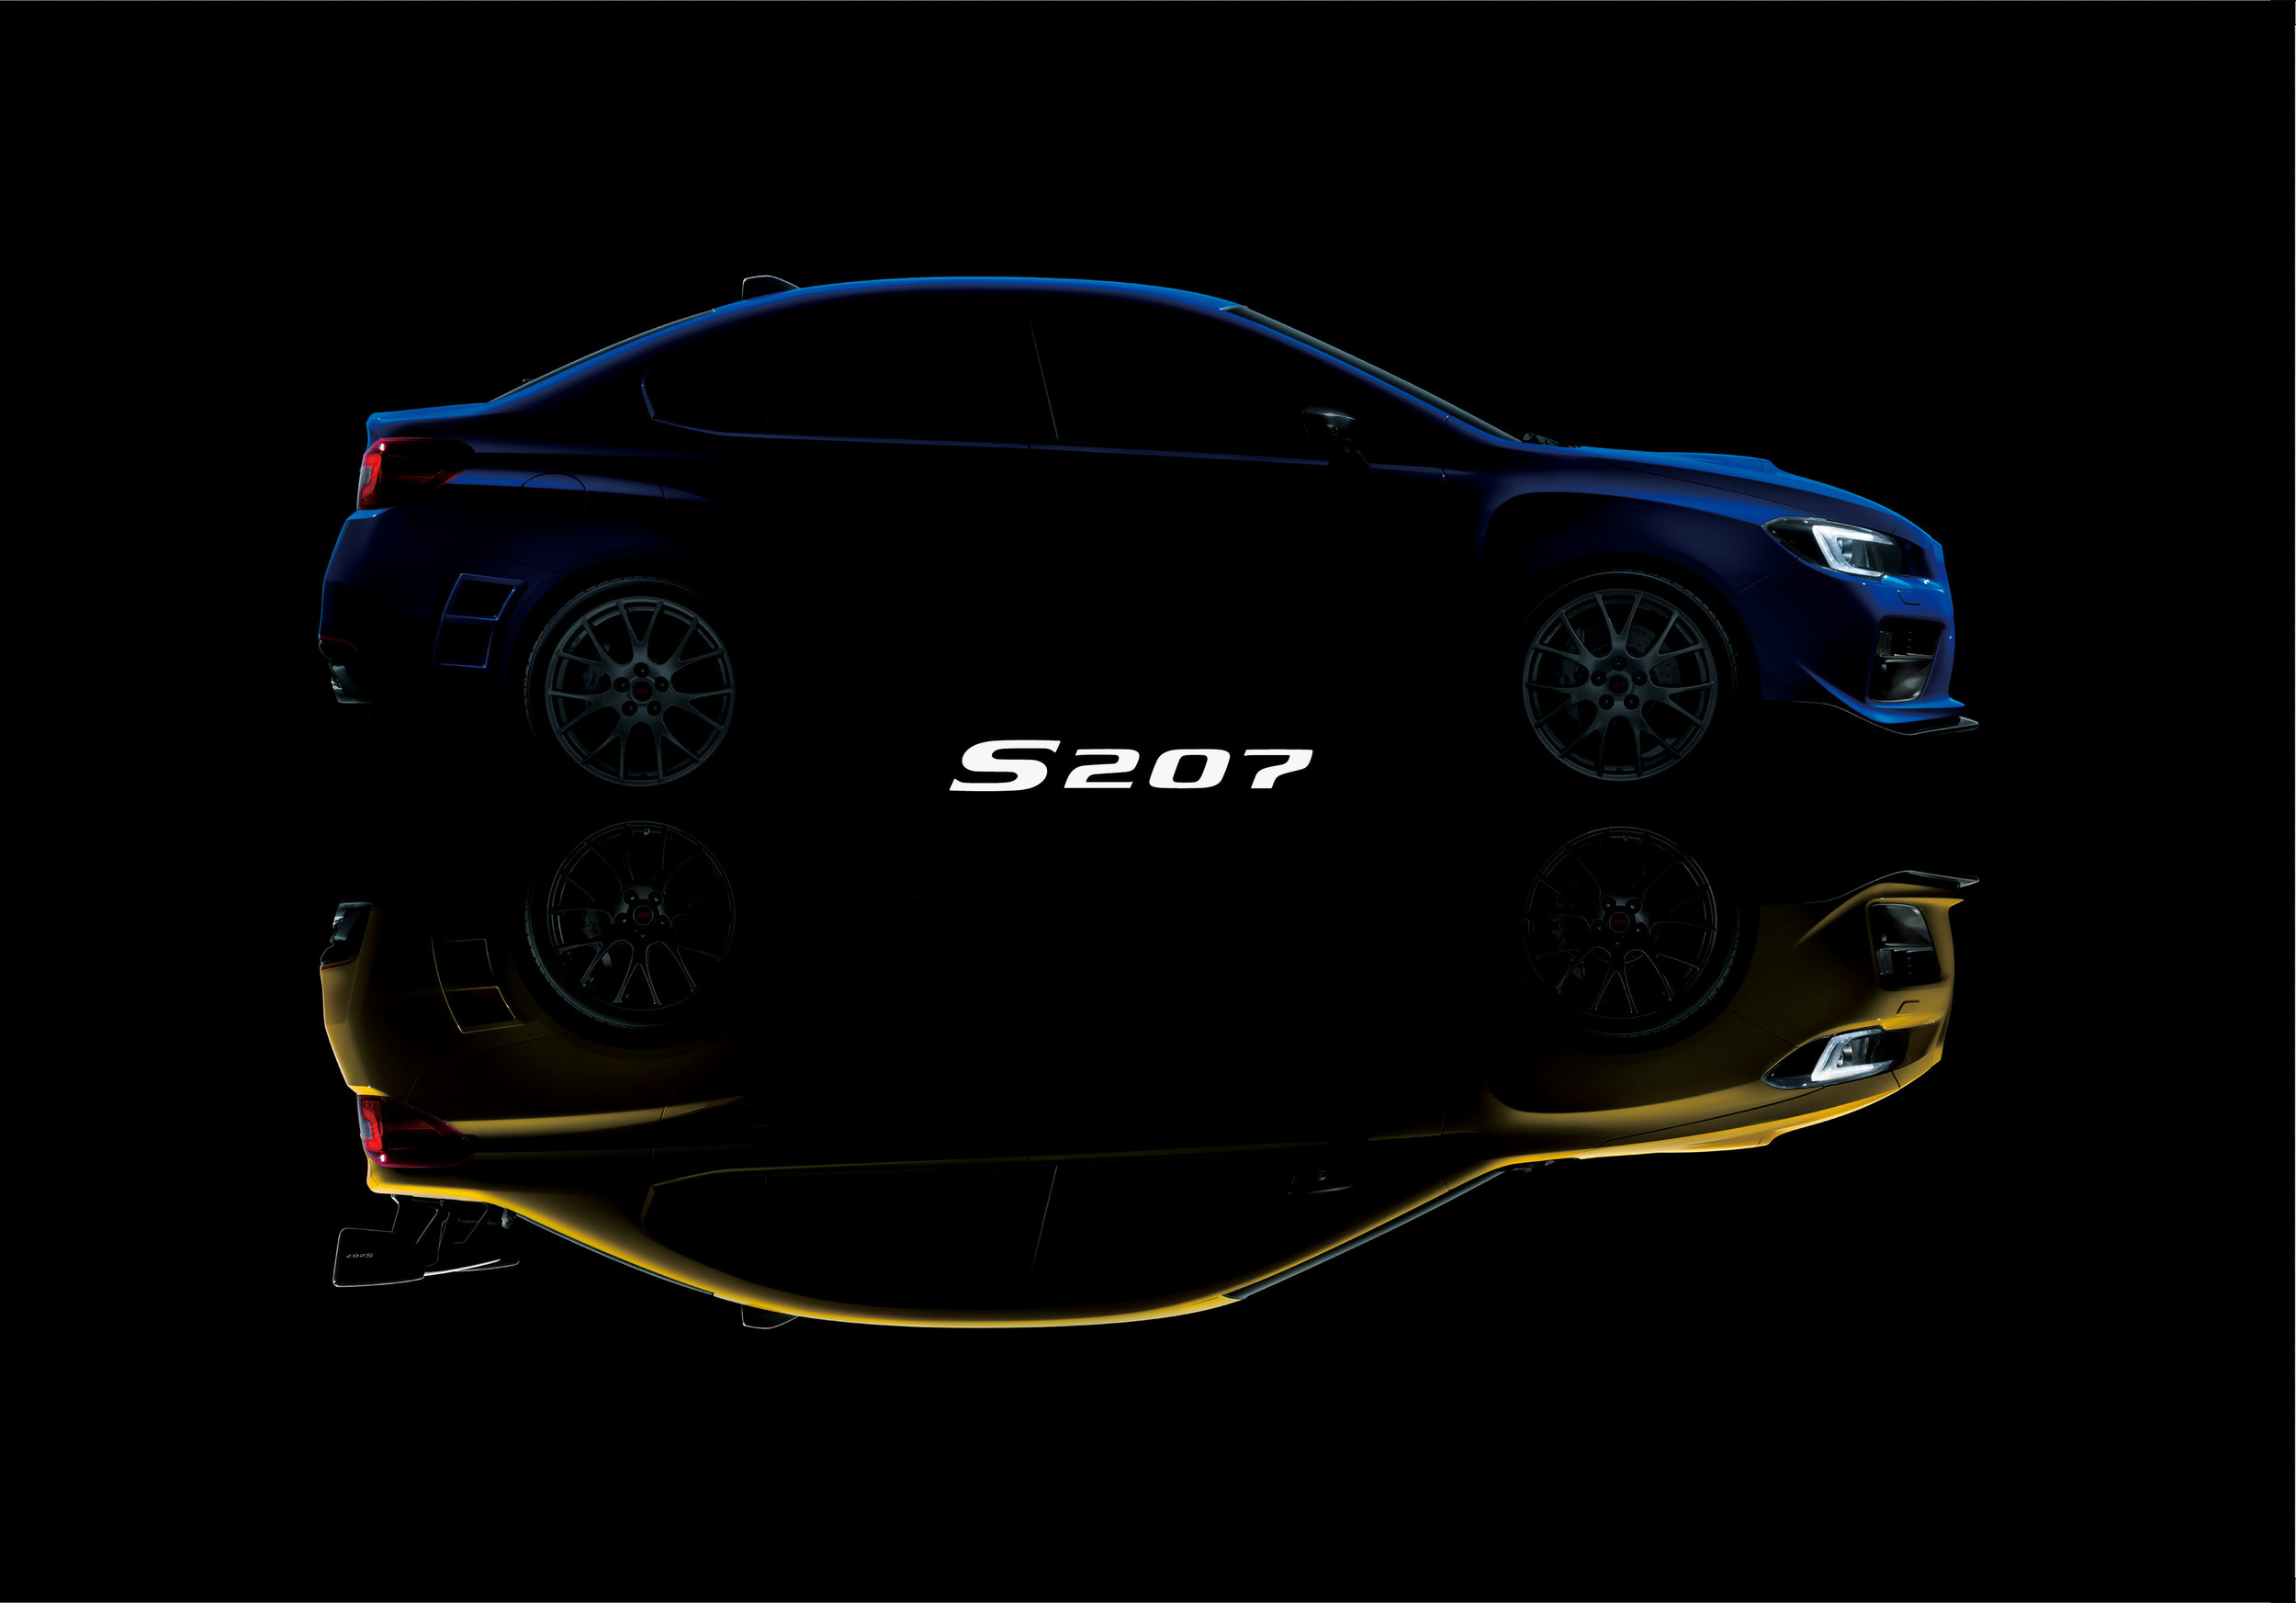 400 Subaru WRX STI S207 Vehicles Included In The Japanese Limited Edition 5